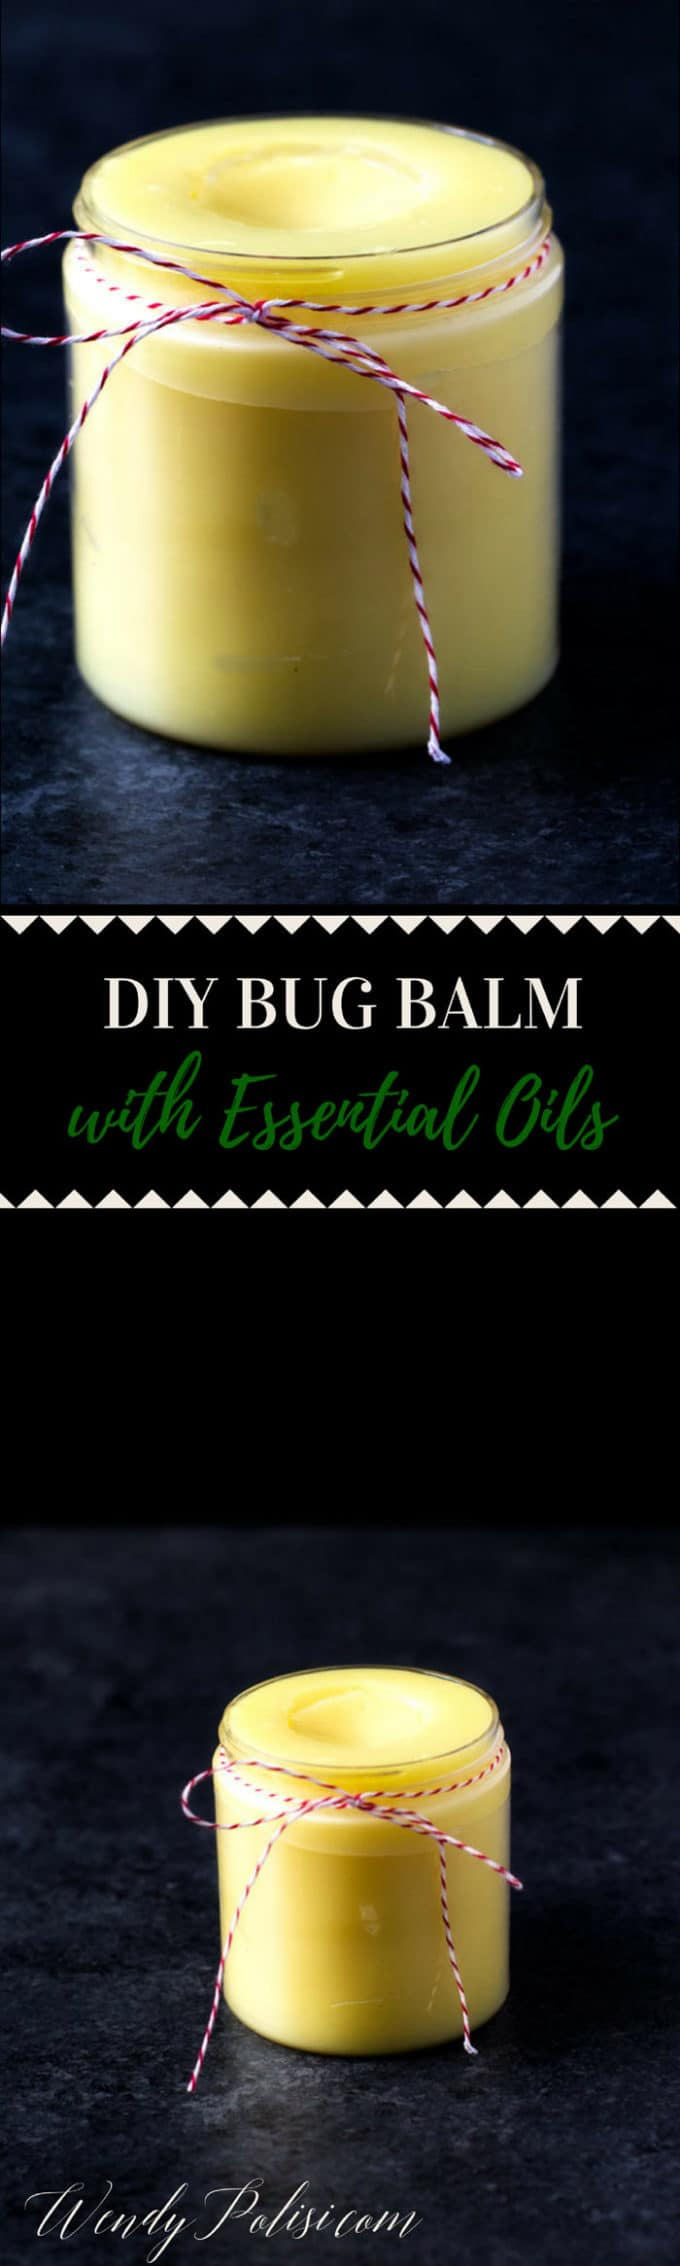 This DIY Bug Balm with Essential Oils is a heavy-duty insect repellant that works on mosquitoes, no-see-ums, biting flies, bees and more!